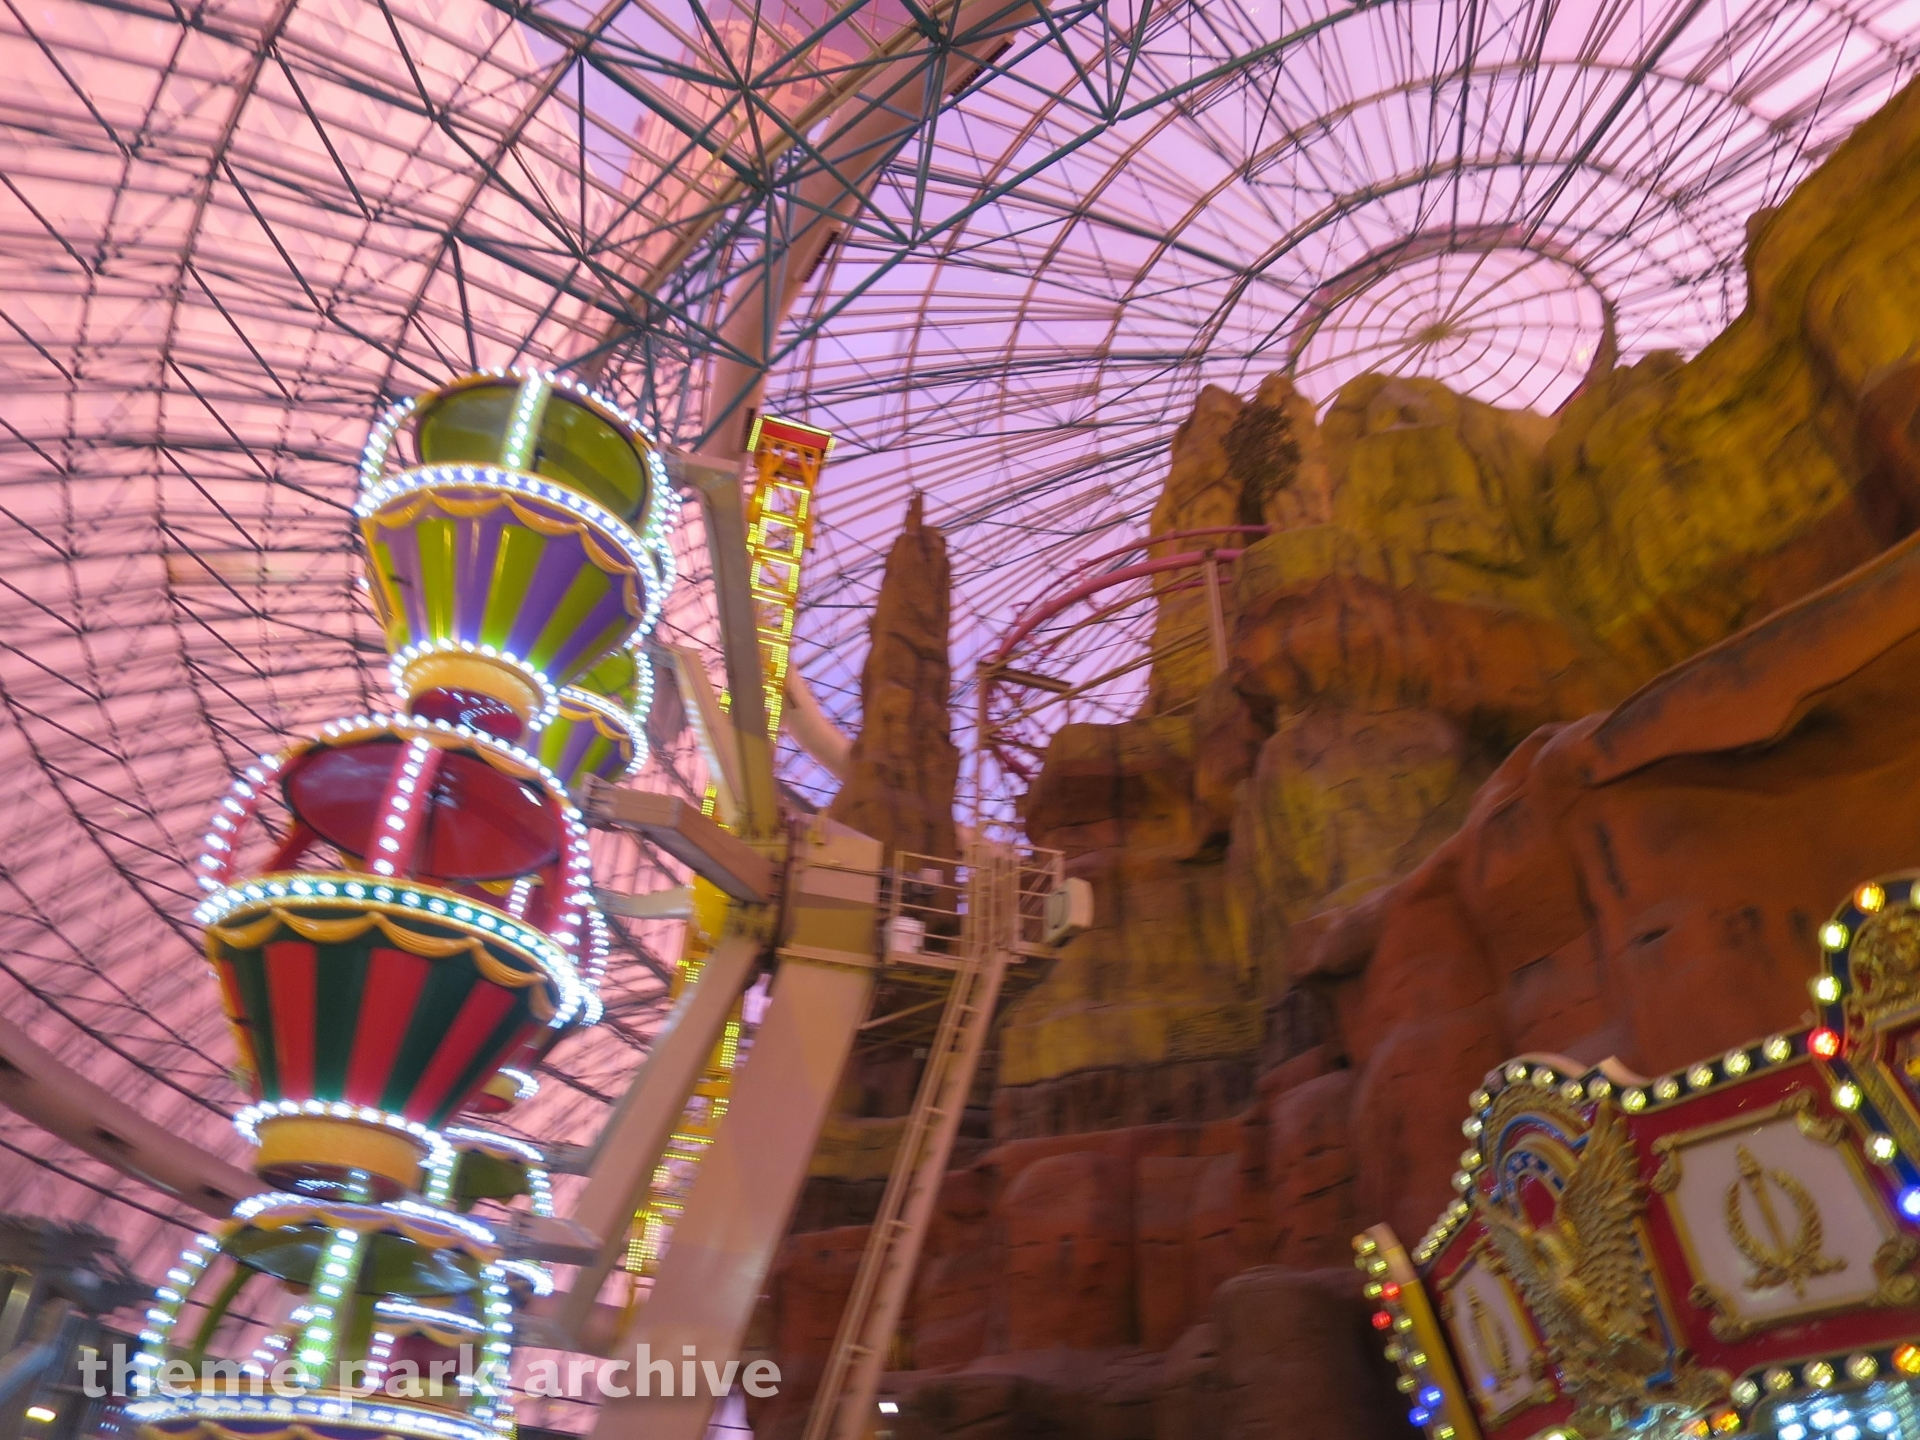 Drifters at Adventuredome